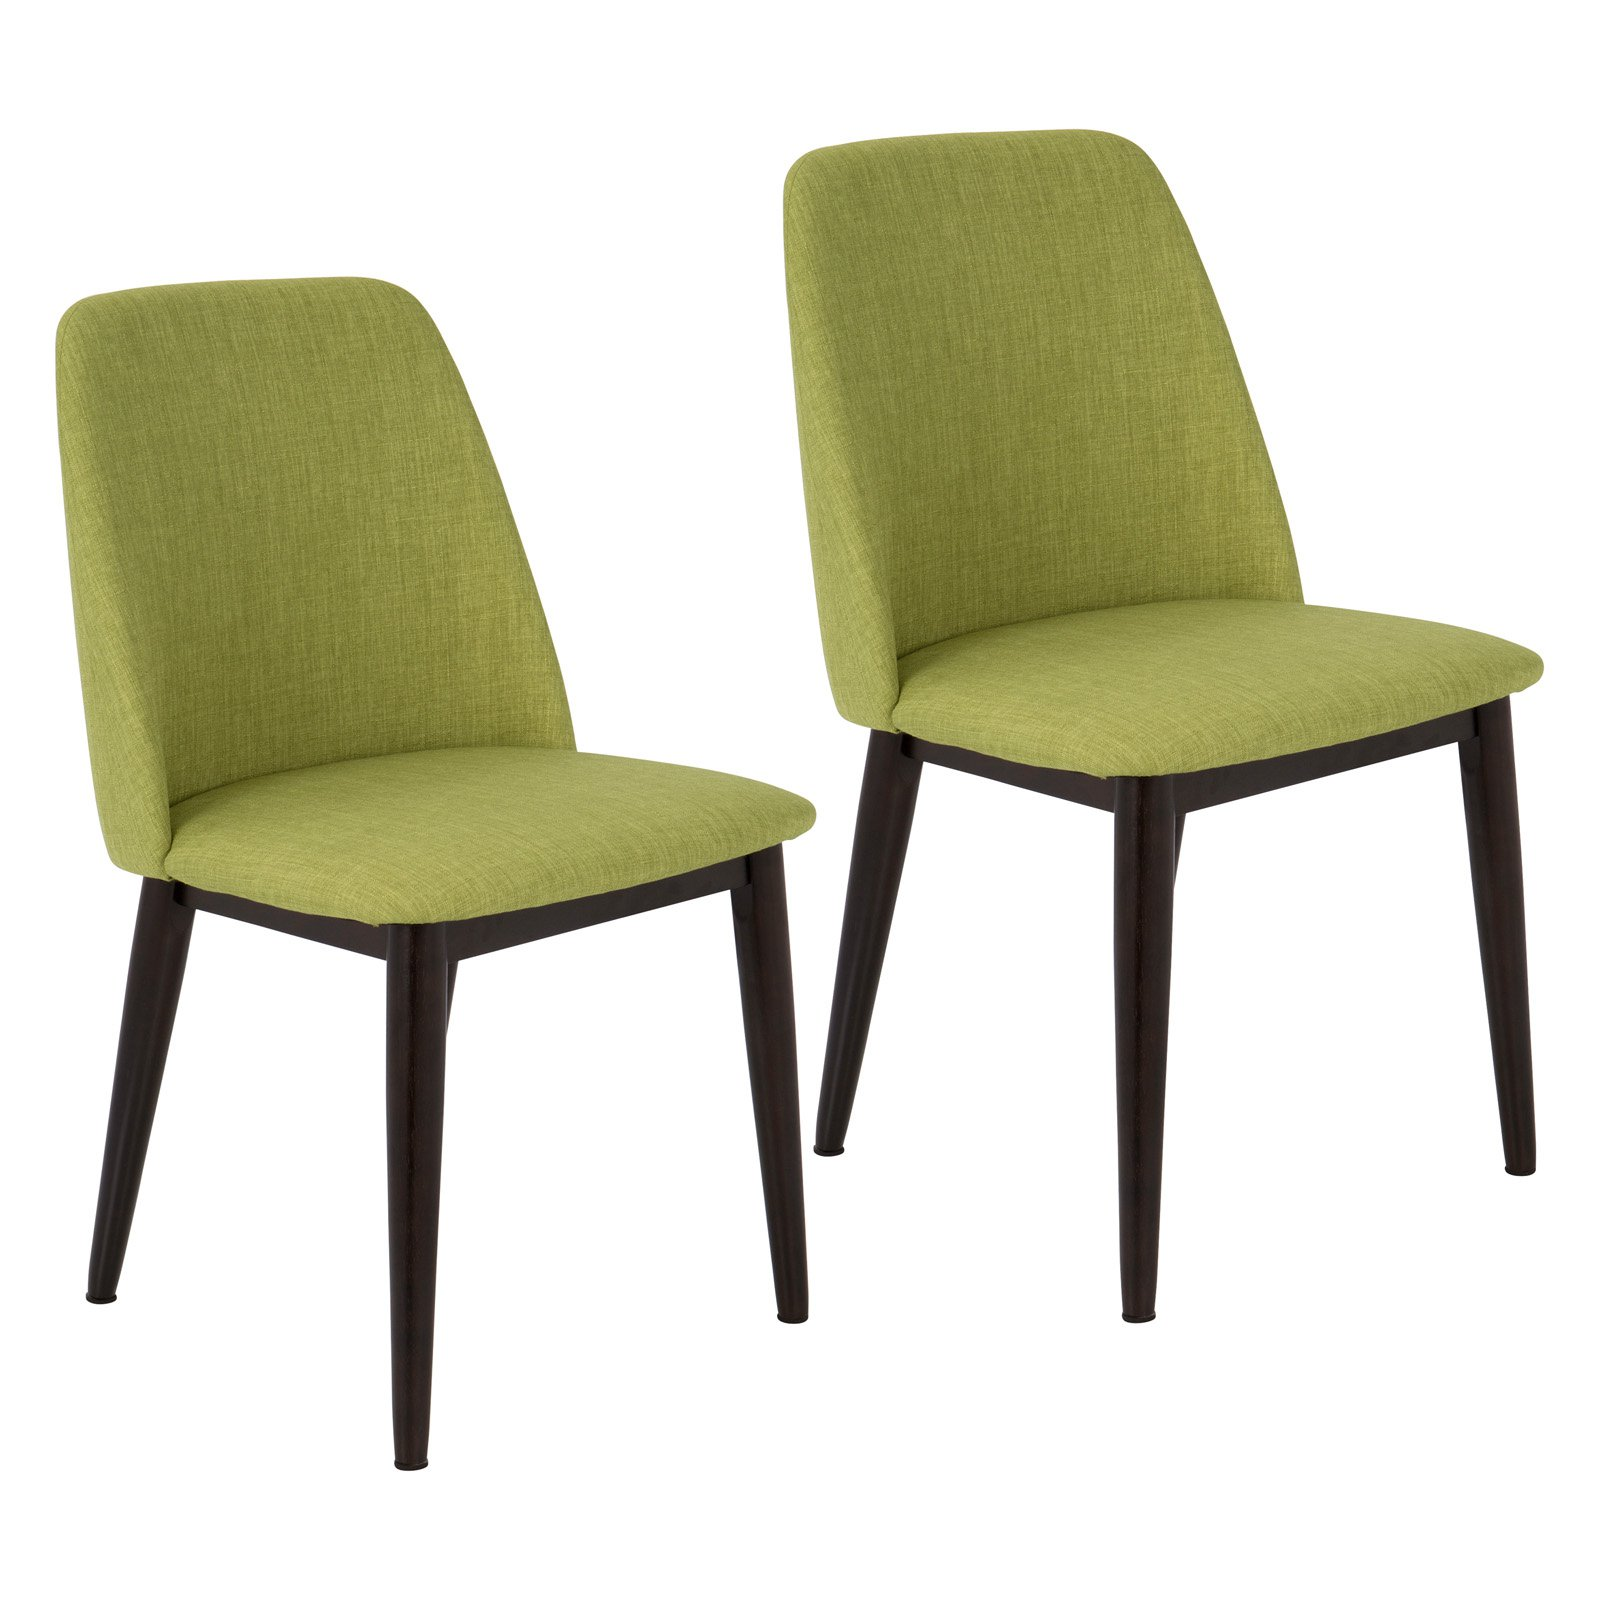 Tintori Contemporary Dining Chair in Green Fabric by LumiSource - Set of 2